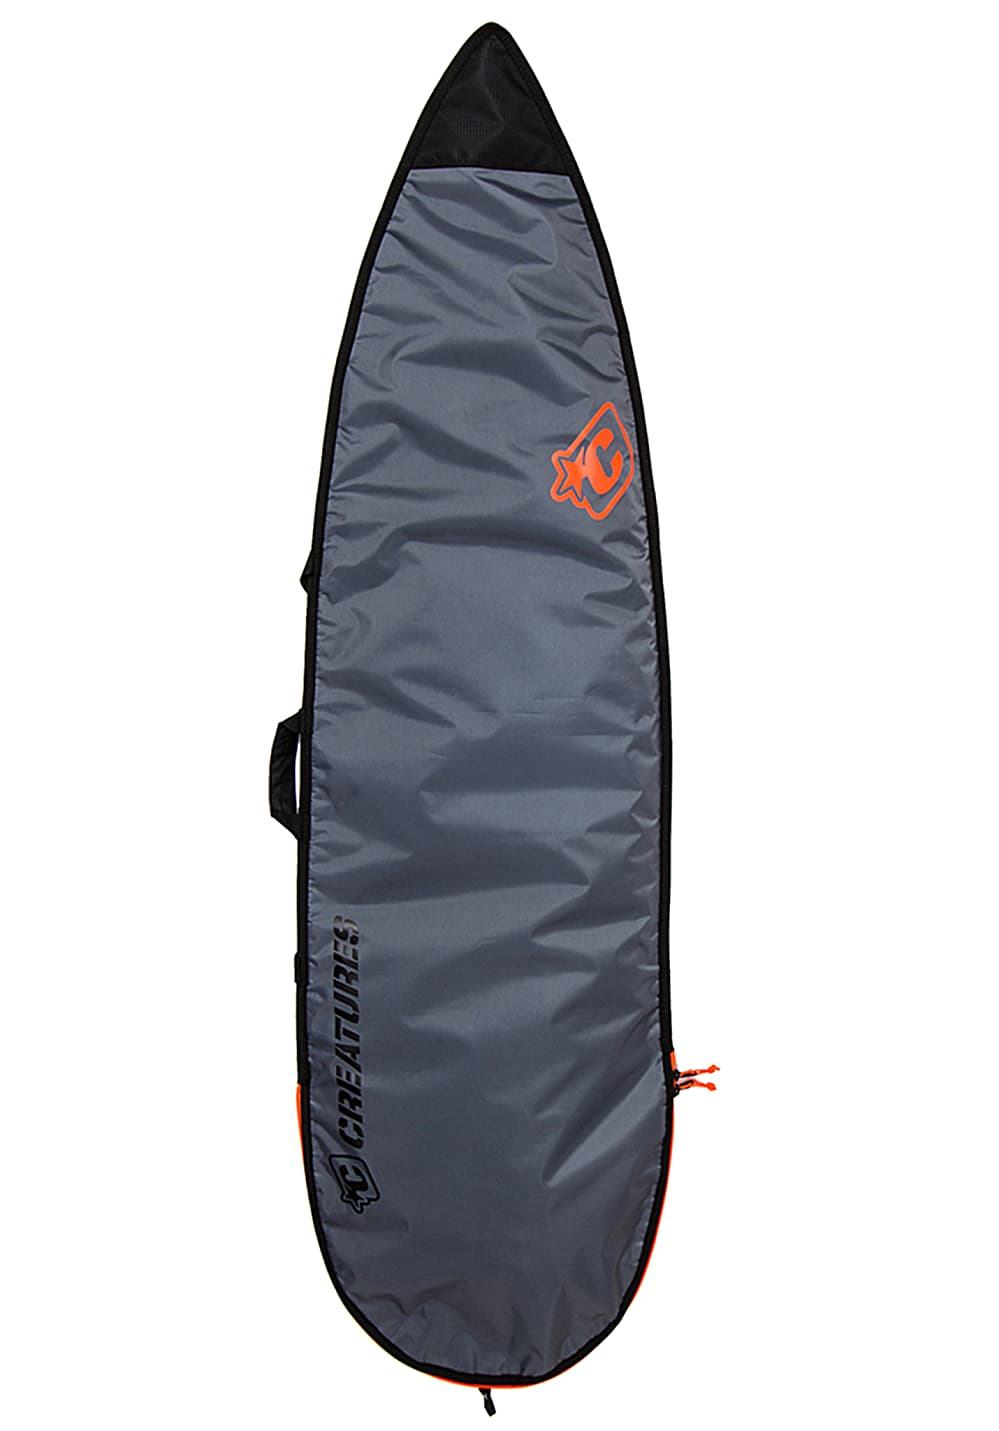 Creatures of Leisure Shortboard Lite Cover 5´8´´ Surfboardtasche - Grau